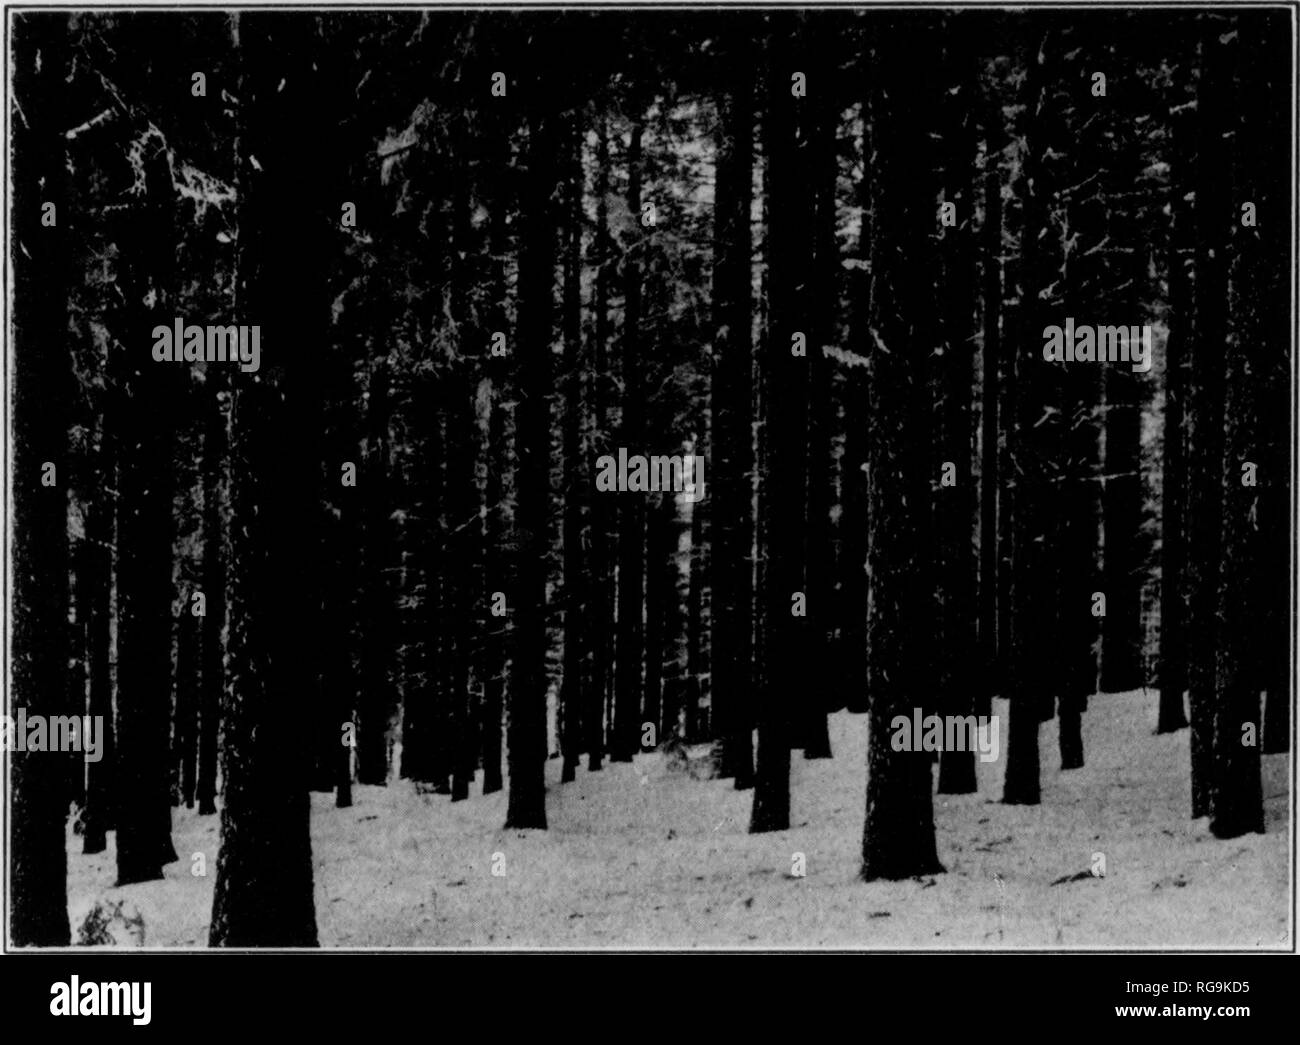 . Bulletin (Pennsylvania Department of Forestry), no. 11. Forests and forestry. 22 as transplantmg, and the resulting plants are tratvsplatvts. Trans- planting usually produces better plants because they are stockier and better prepared for the shock they will receive when planted in the forest. Trees like White Pine, Red Pine, and Norway Spruce are usually left in the nursery for two or three years before final planting, while other species like Ash, Walnut, and Oak are left in the nursery only one year. The seedlings planted in the forest are usually raised in nurseries but occasionally they - Stock Image